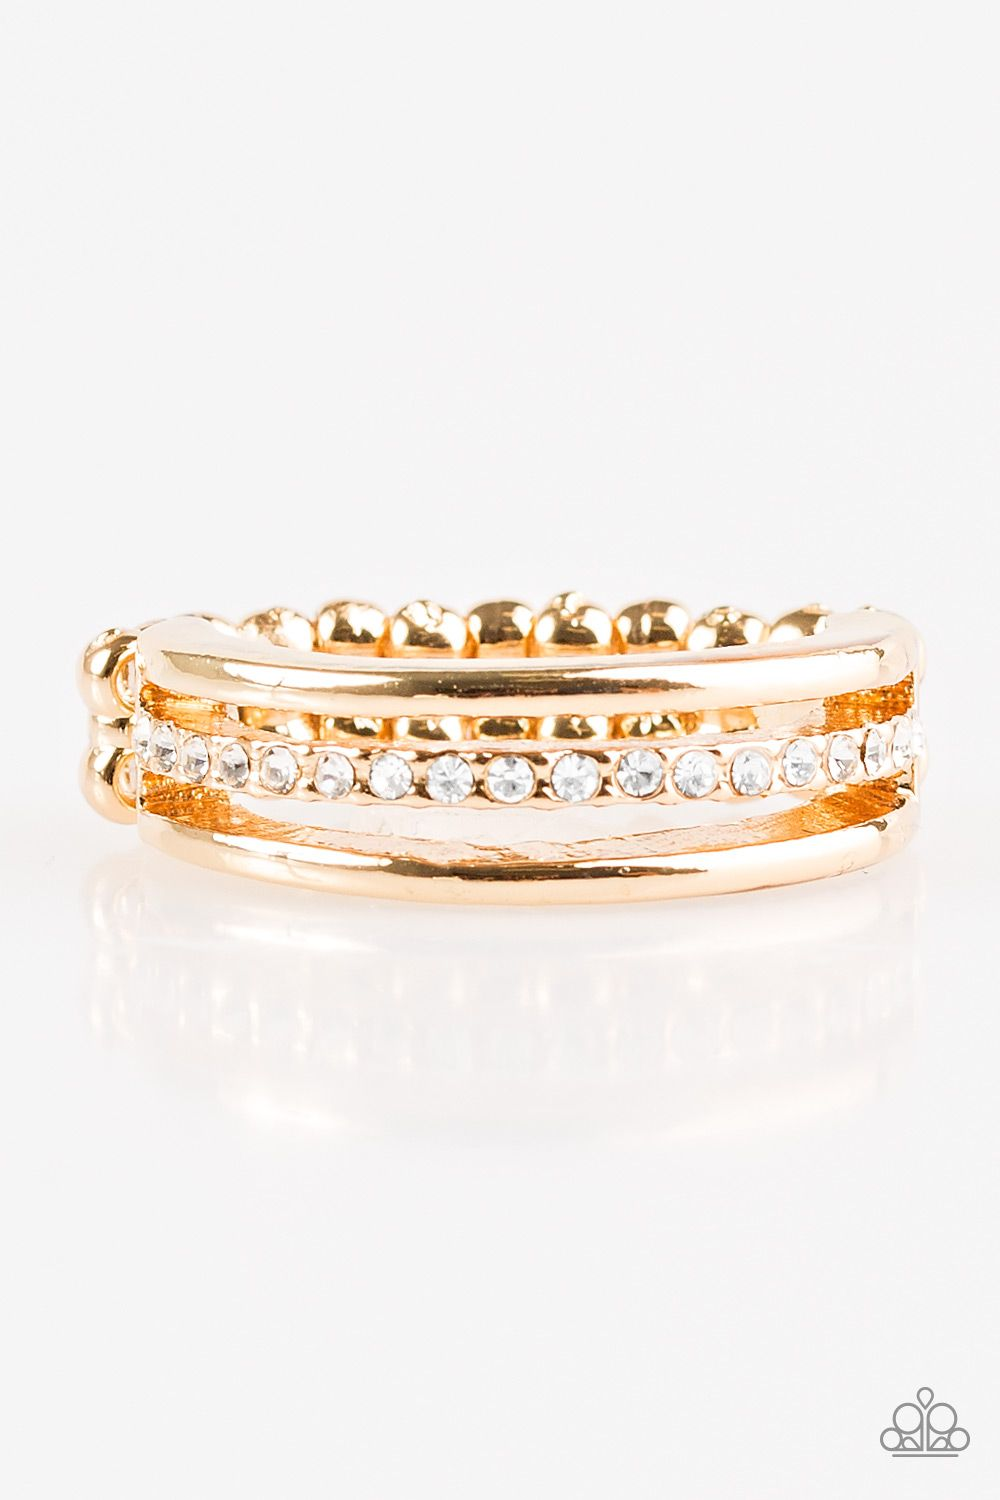 Dainty Gold Bands Layer Across The Finger The Centermost Band Is Encrusted In White Rhinestones For A Glamorous Fi Dainty Gold Band Rhinestone Ring Gold Bands